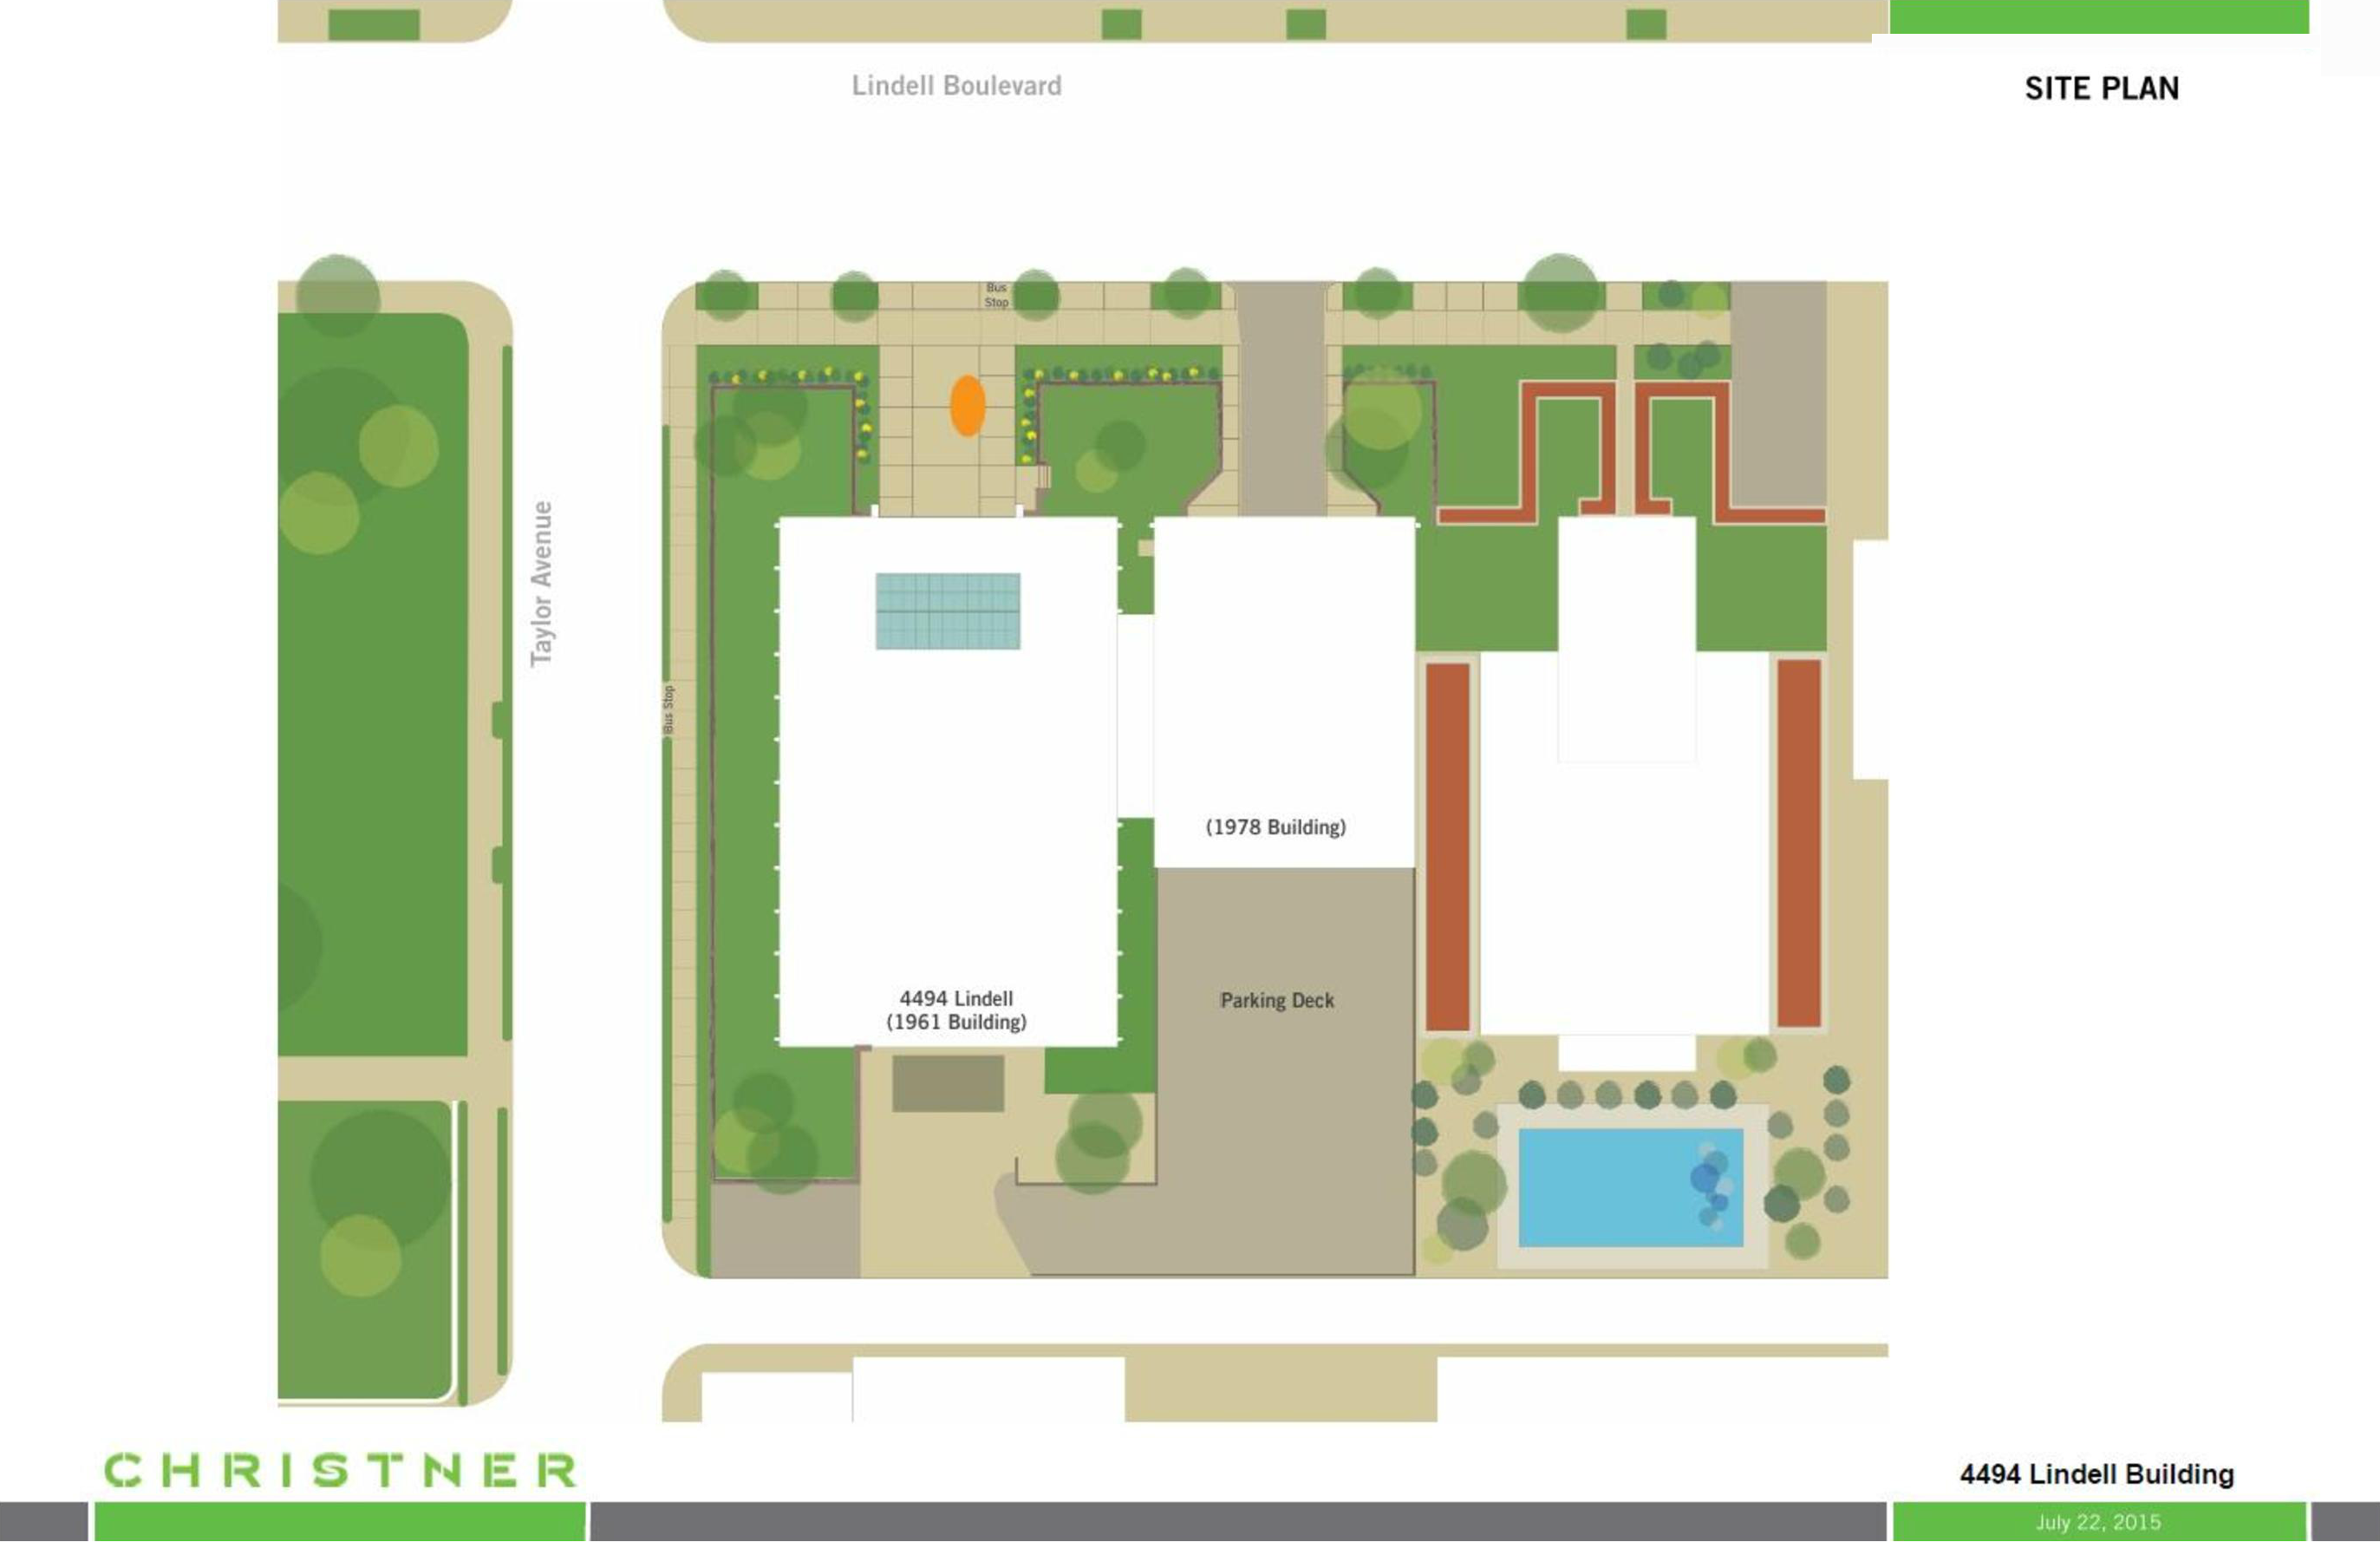 4490-94 Lindell site plan - St. Louis, MO